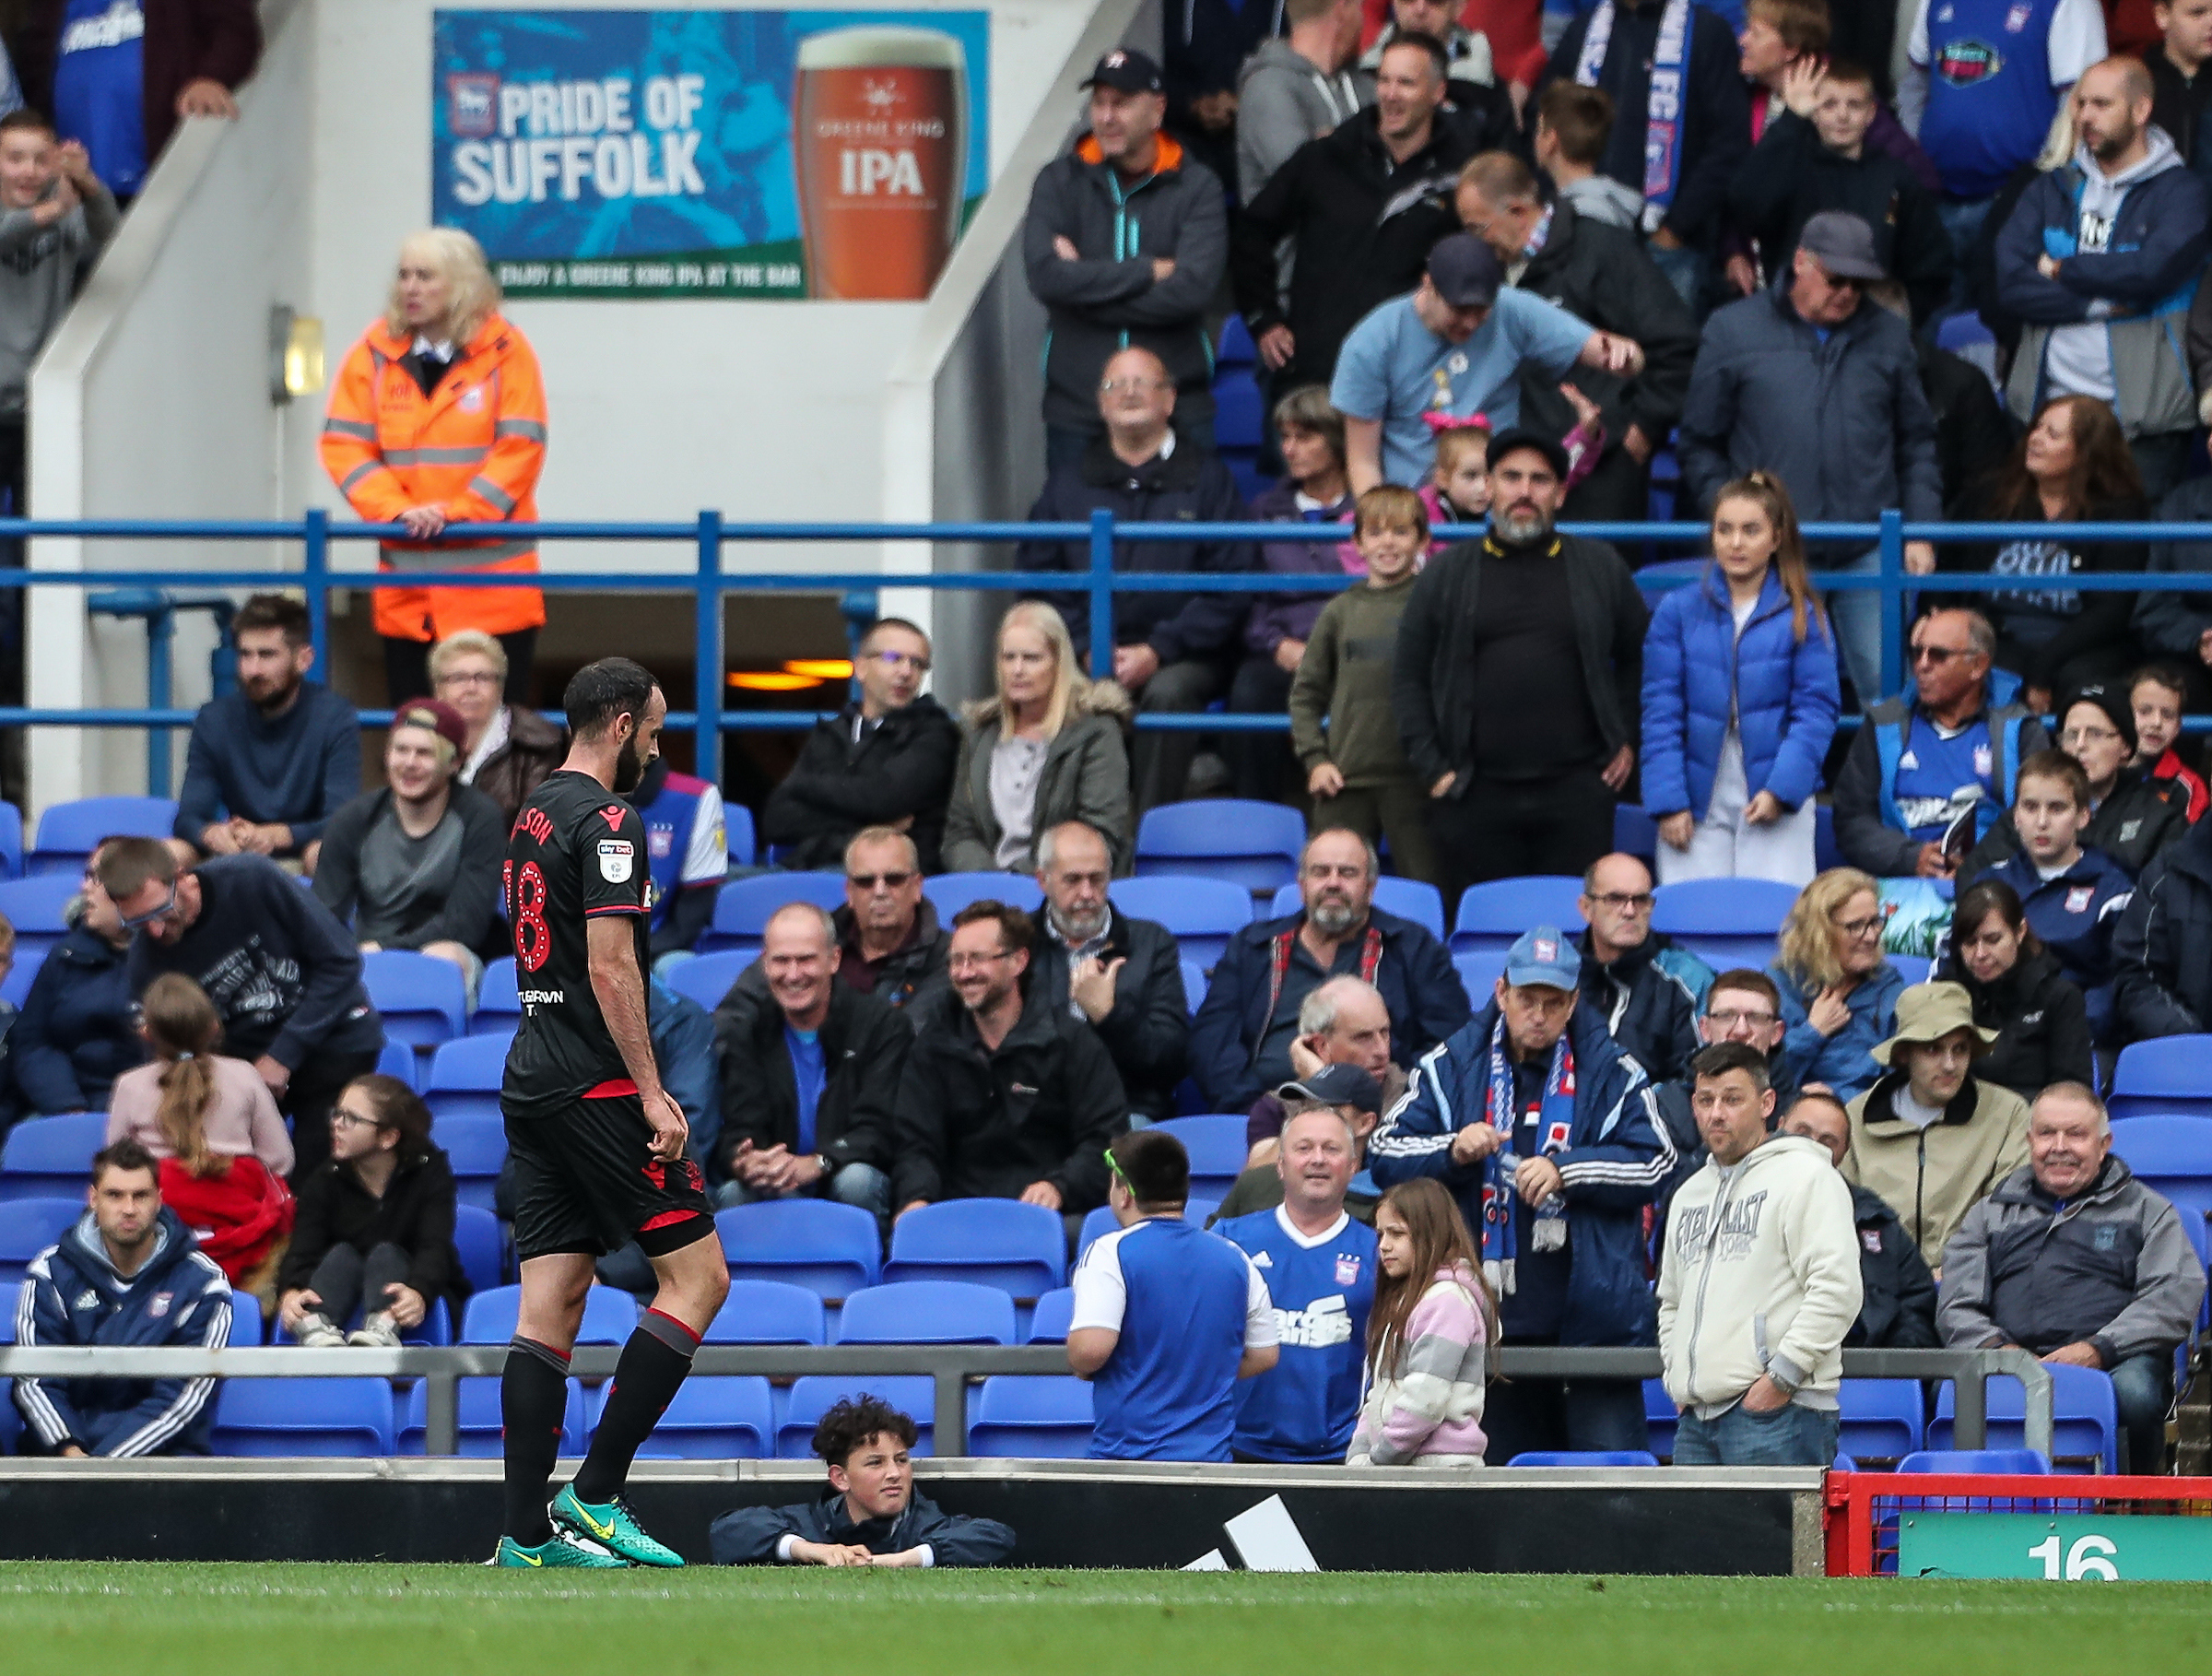 Marc Wilson walks off the field at Portman Road after his red card against Ipswich Town